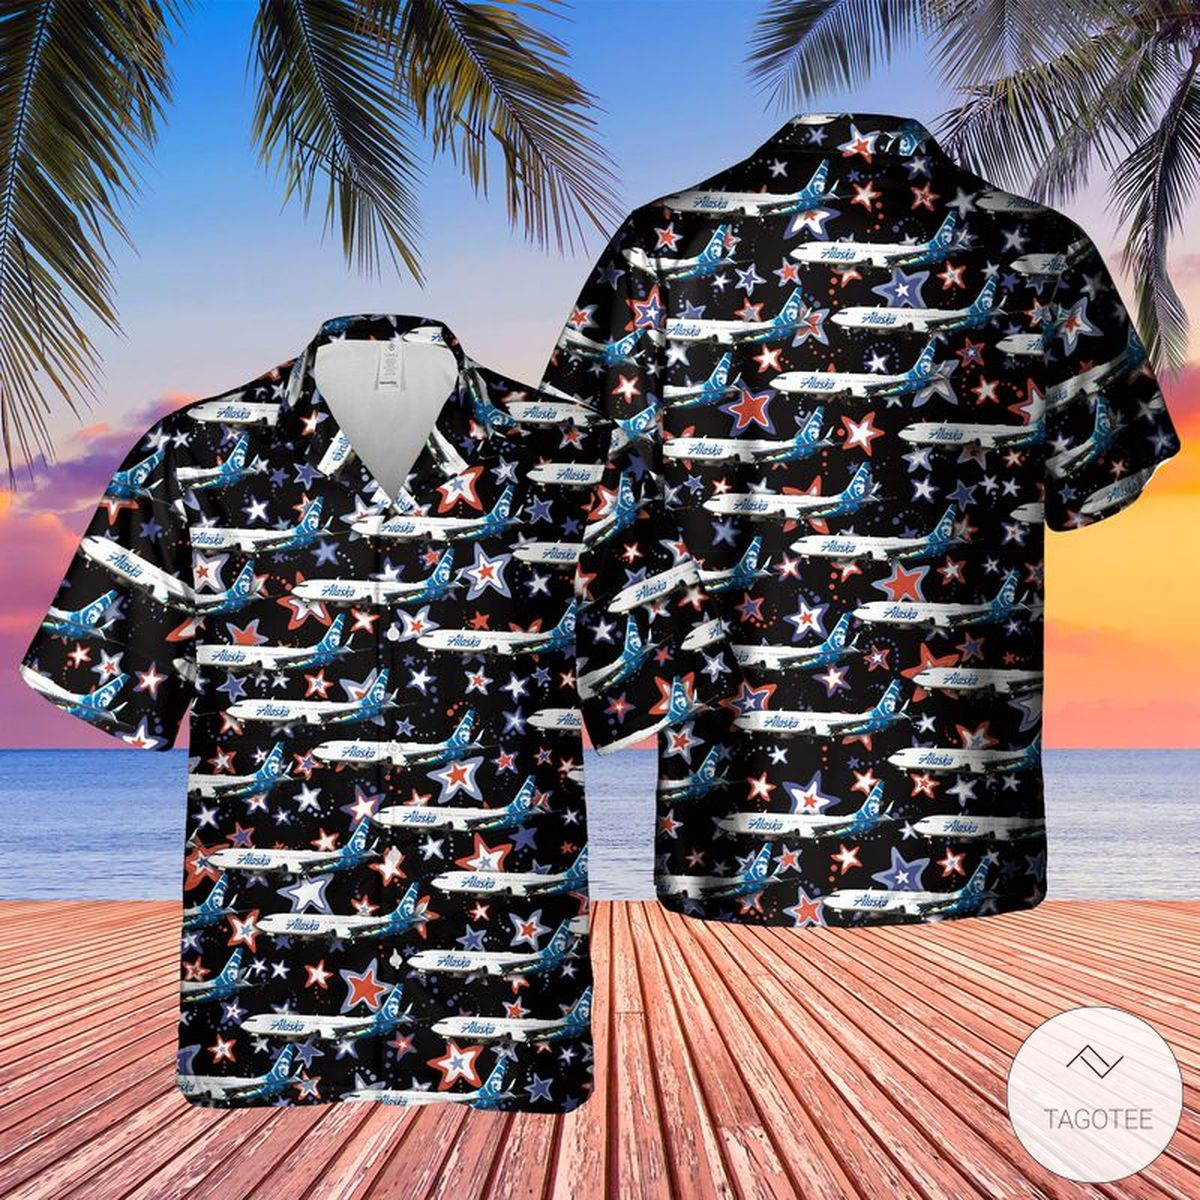 US Airlines 6 Boeing 737-900 ER 4th of July Hawaiian Shirt